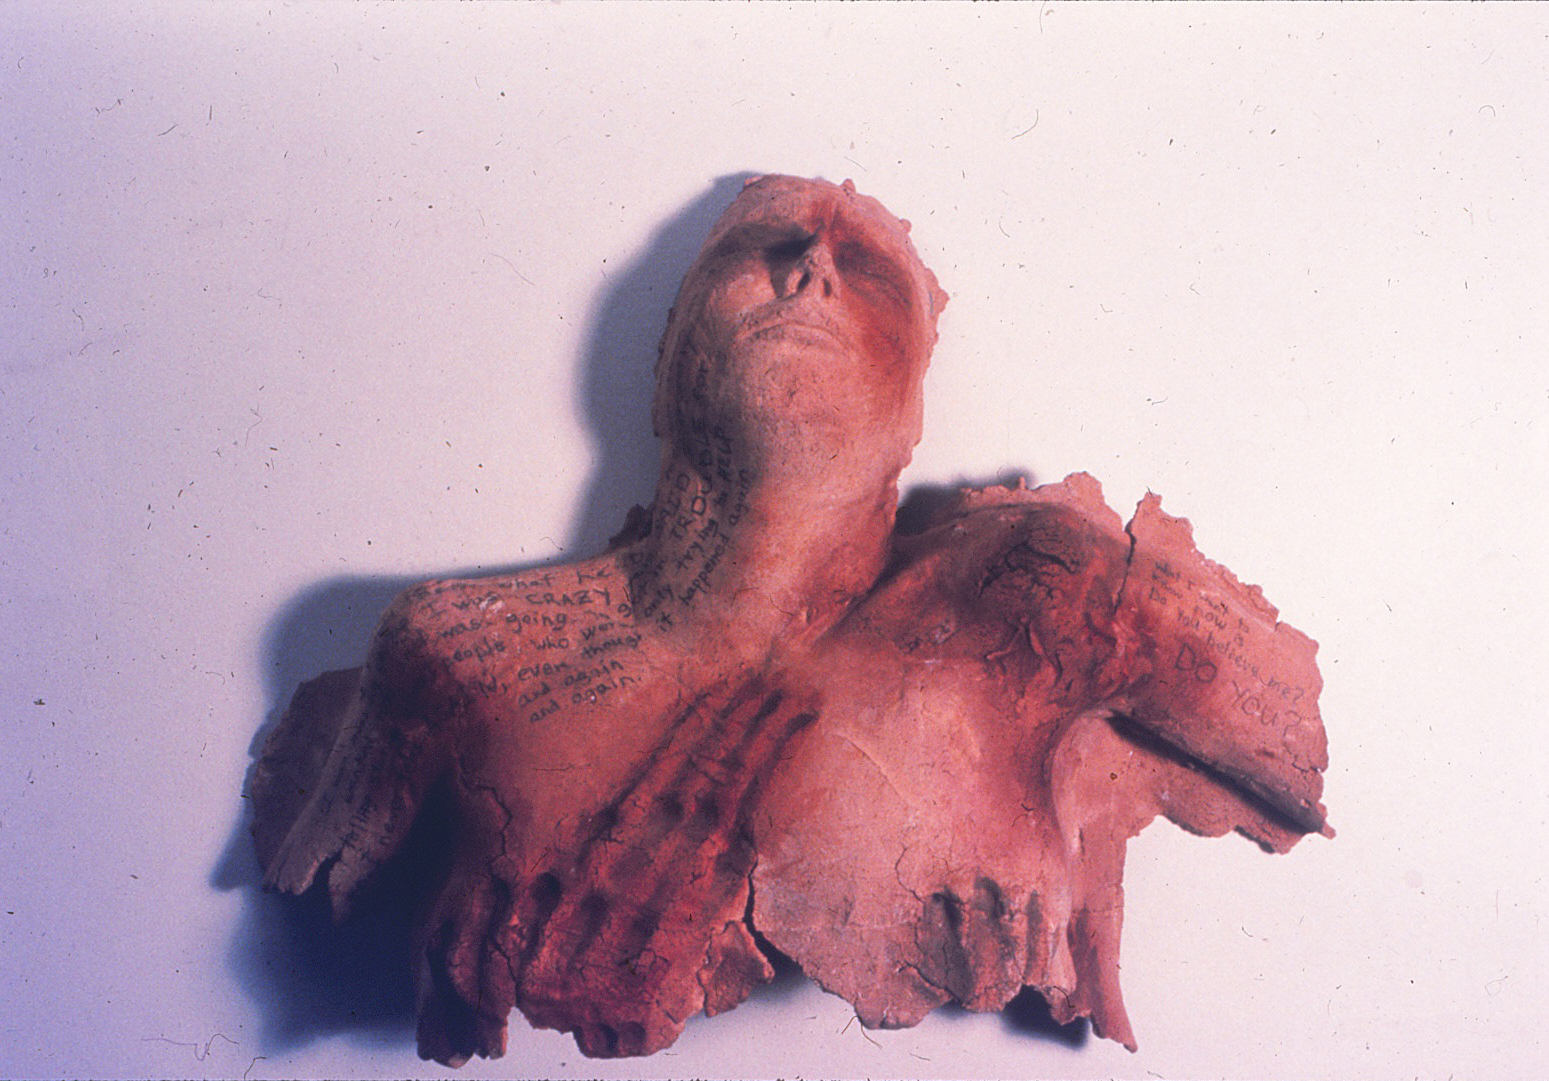 photo of red woman's sculpture head thrown back and shoulders which look burned with messages written on them